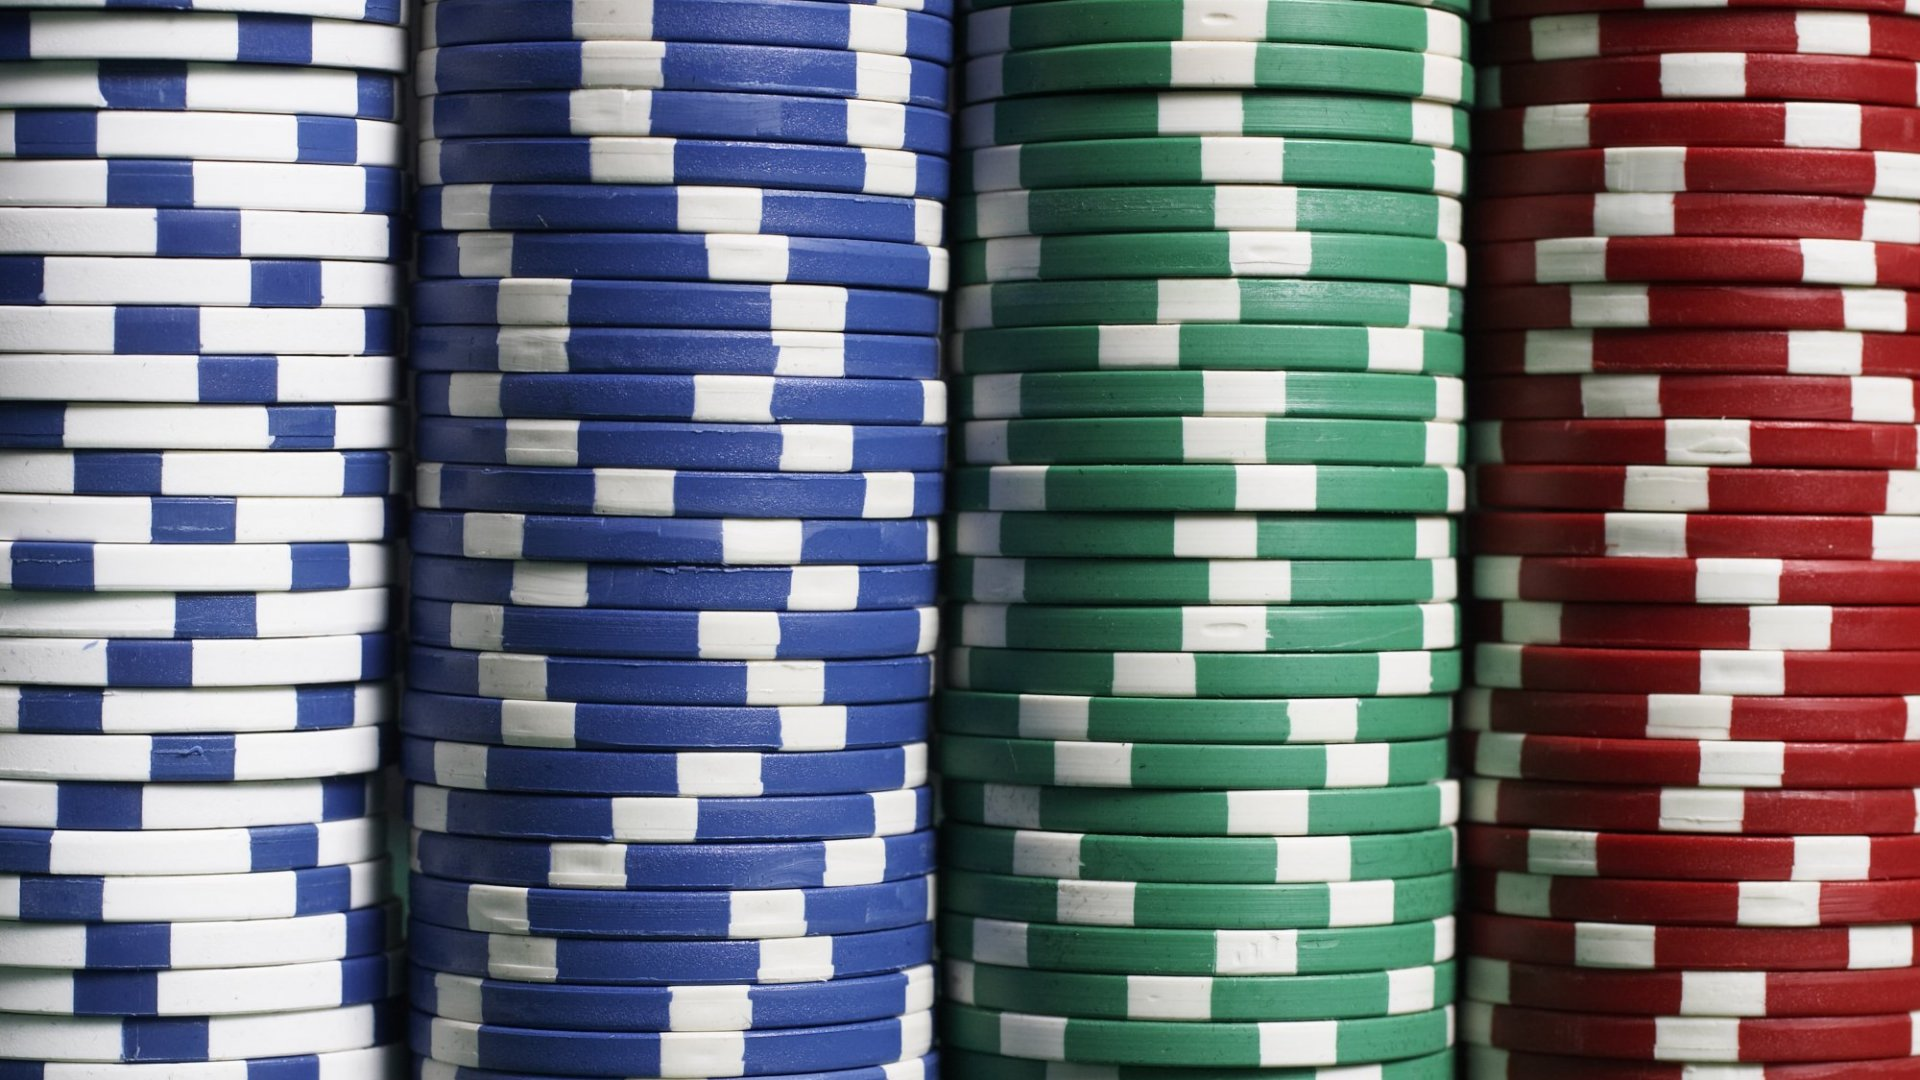 8 Lessons From Poker That Will Make You a Better Entrepreneur